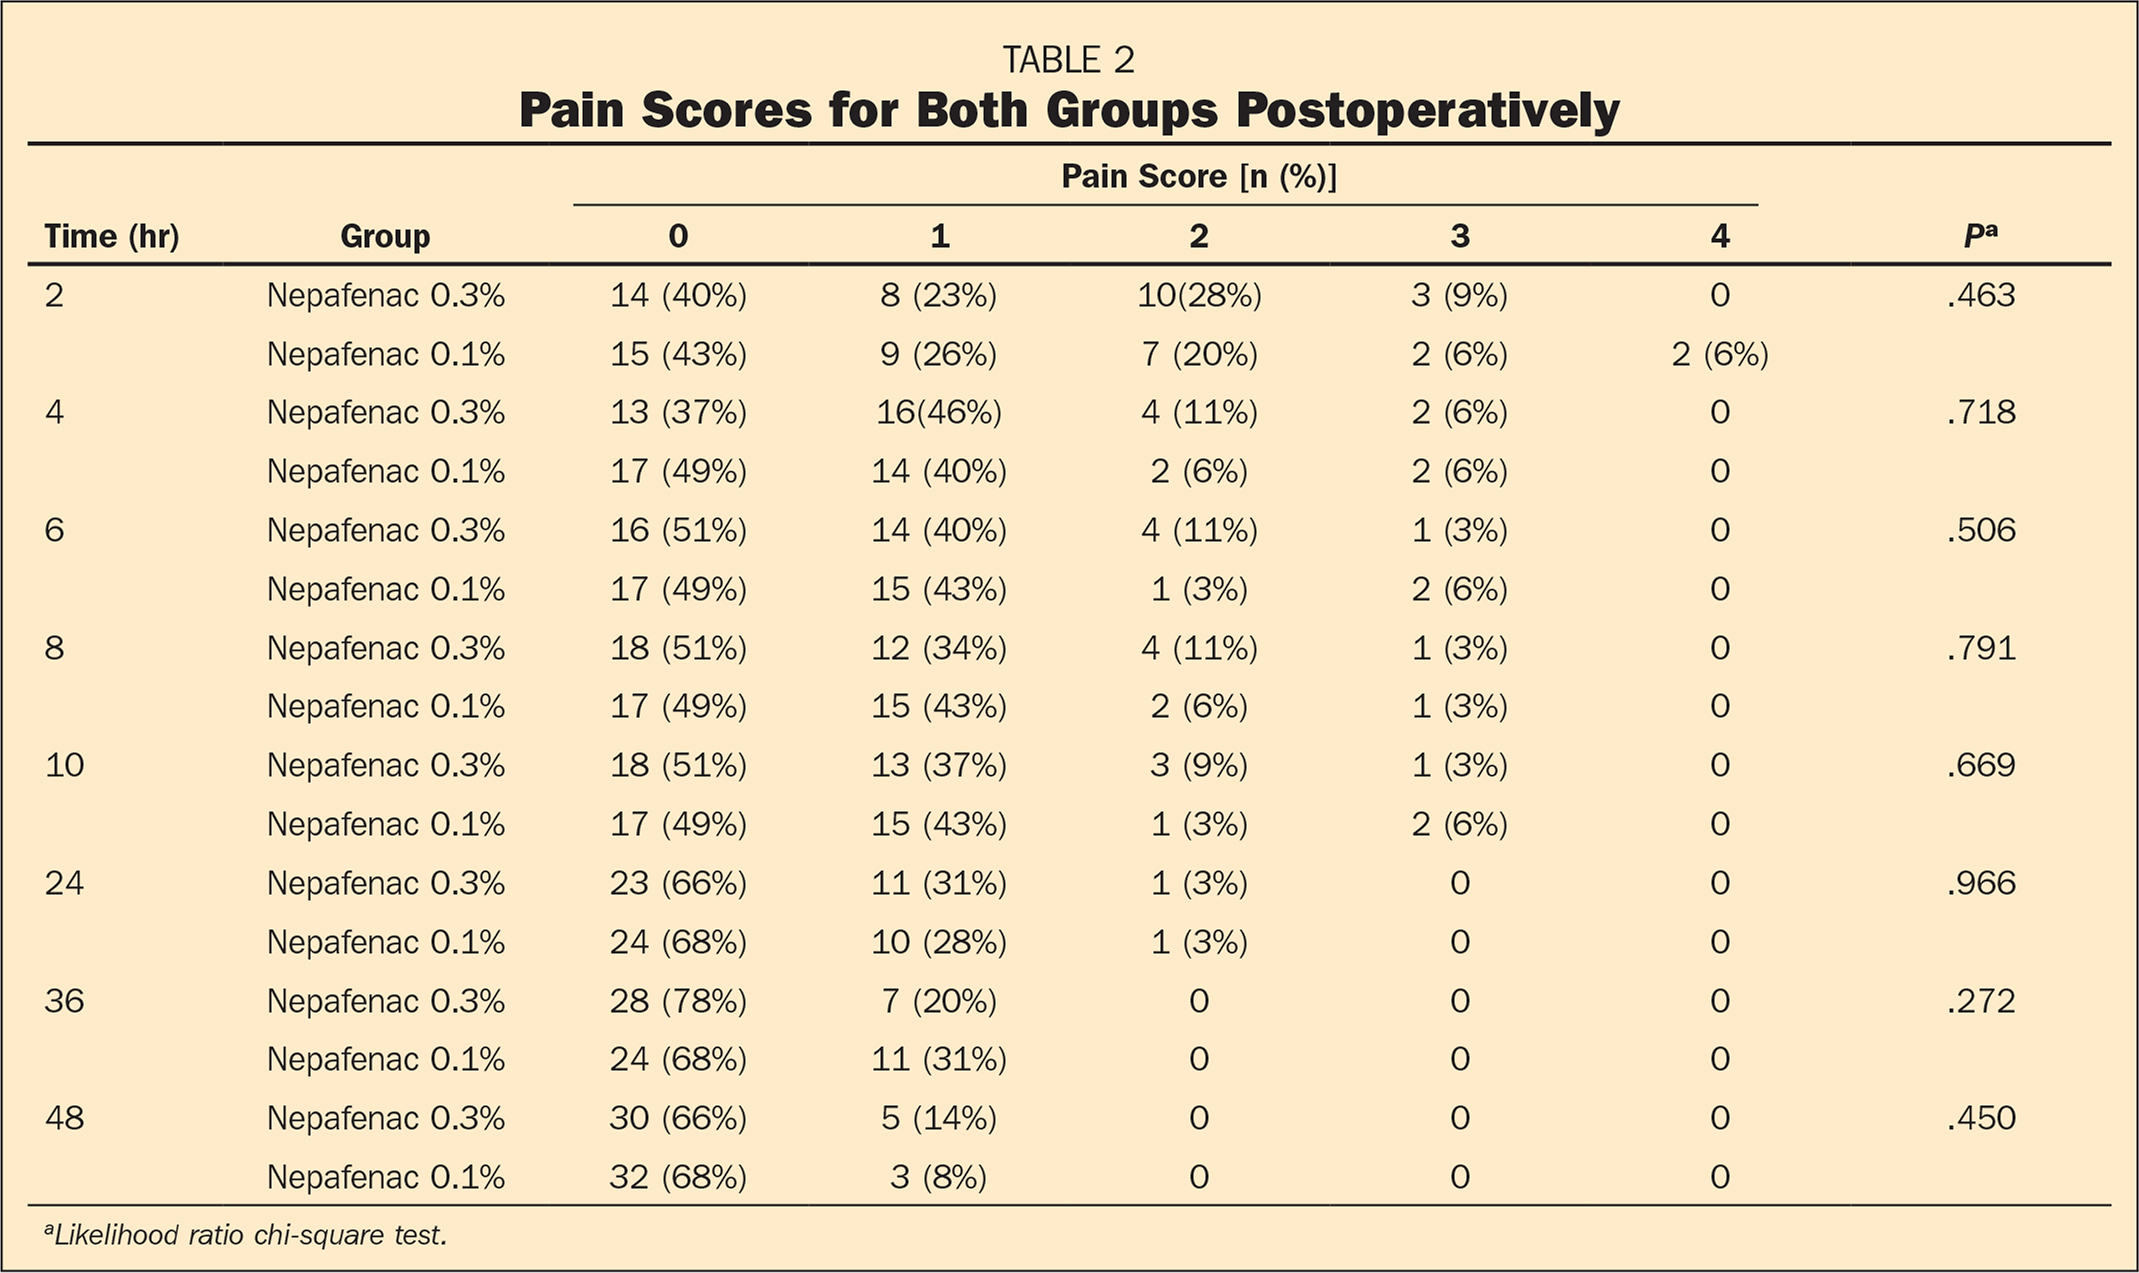 Pain Scores for Both Groups Postoperatively